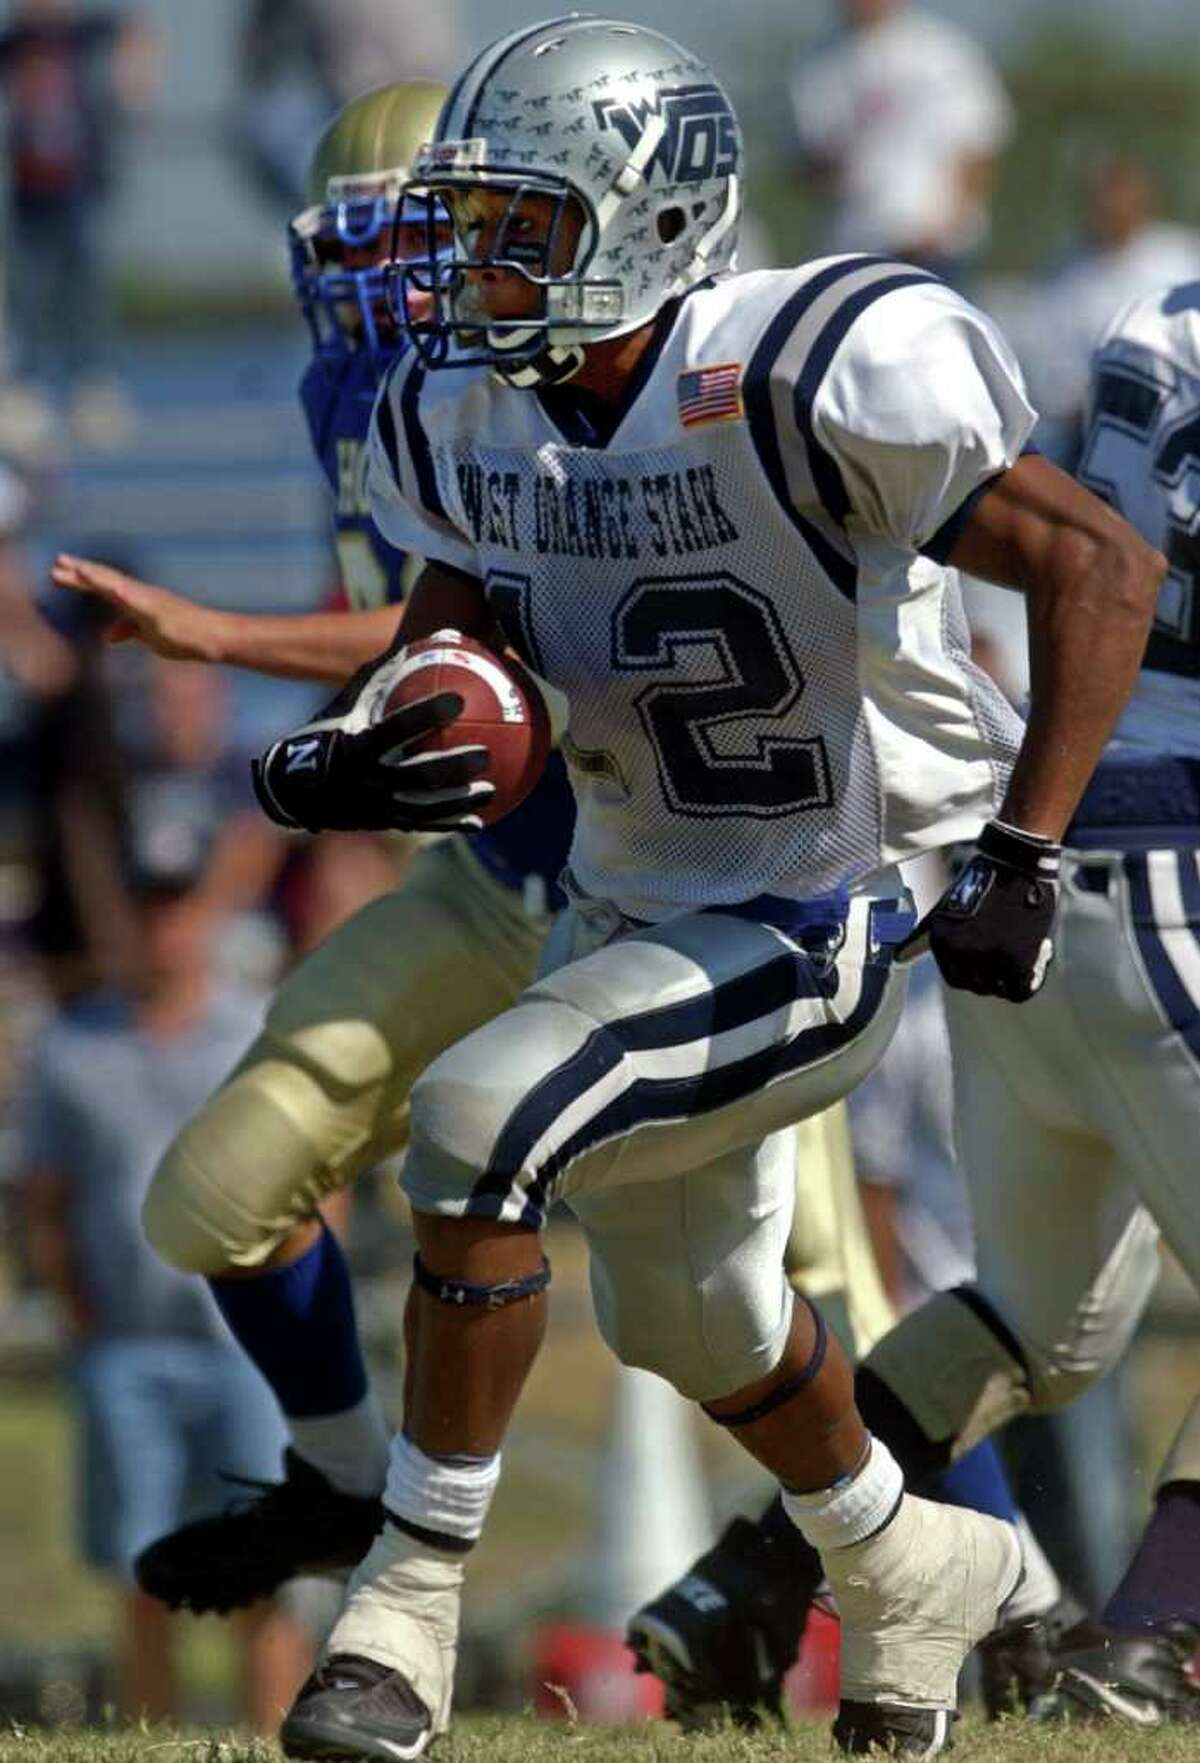 West Orange-Stark's Earl Thomas (No. 12, center) turns a kick into a touchdown against Hamshire Fannett during a football game in Hamshire on Saturday, October 22, 2005. Mark Hancock/The Beaumont Enterprise